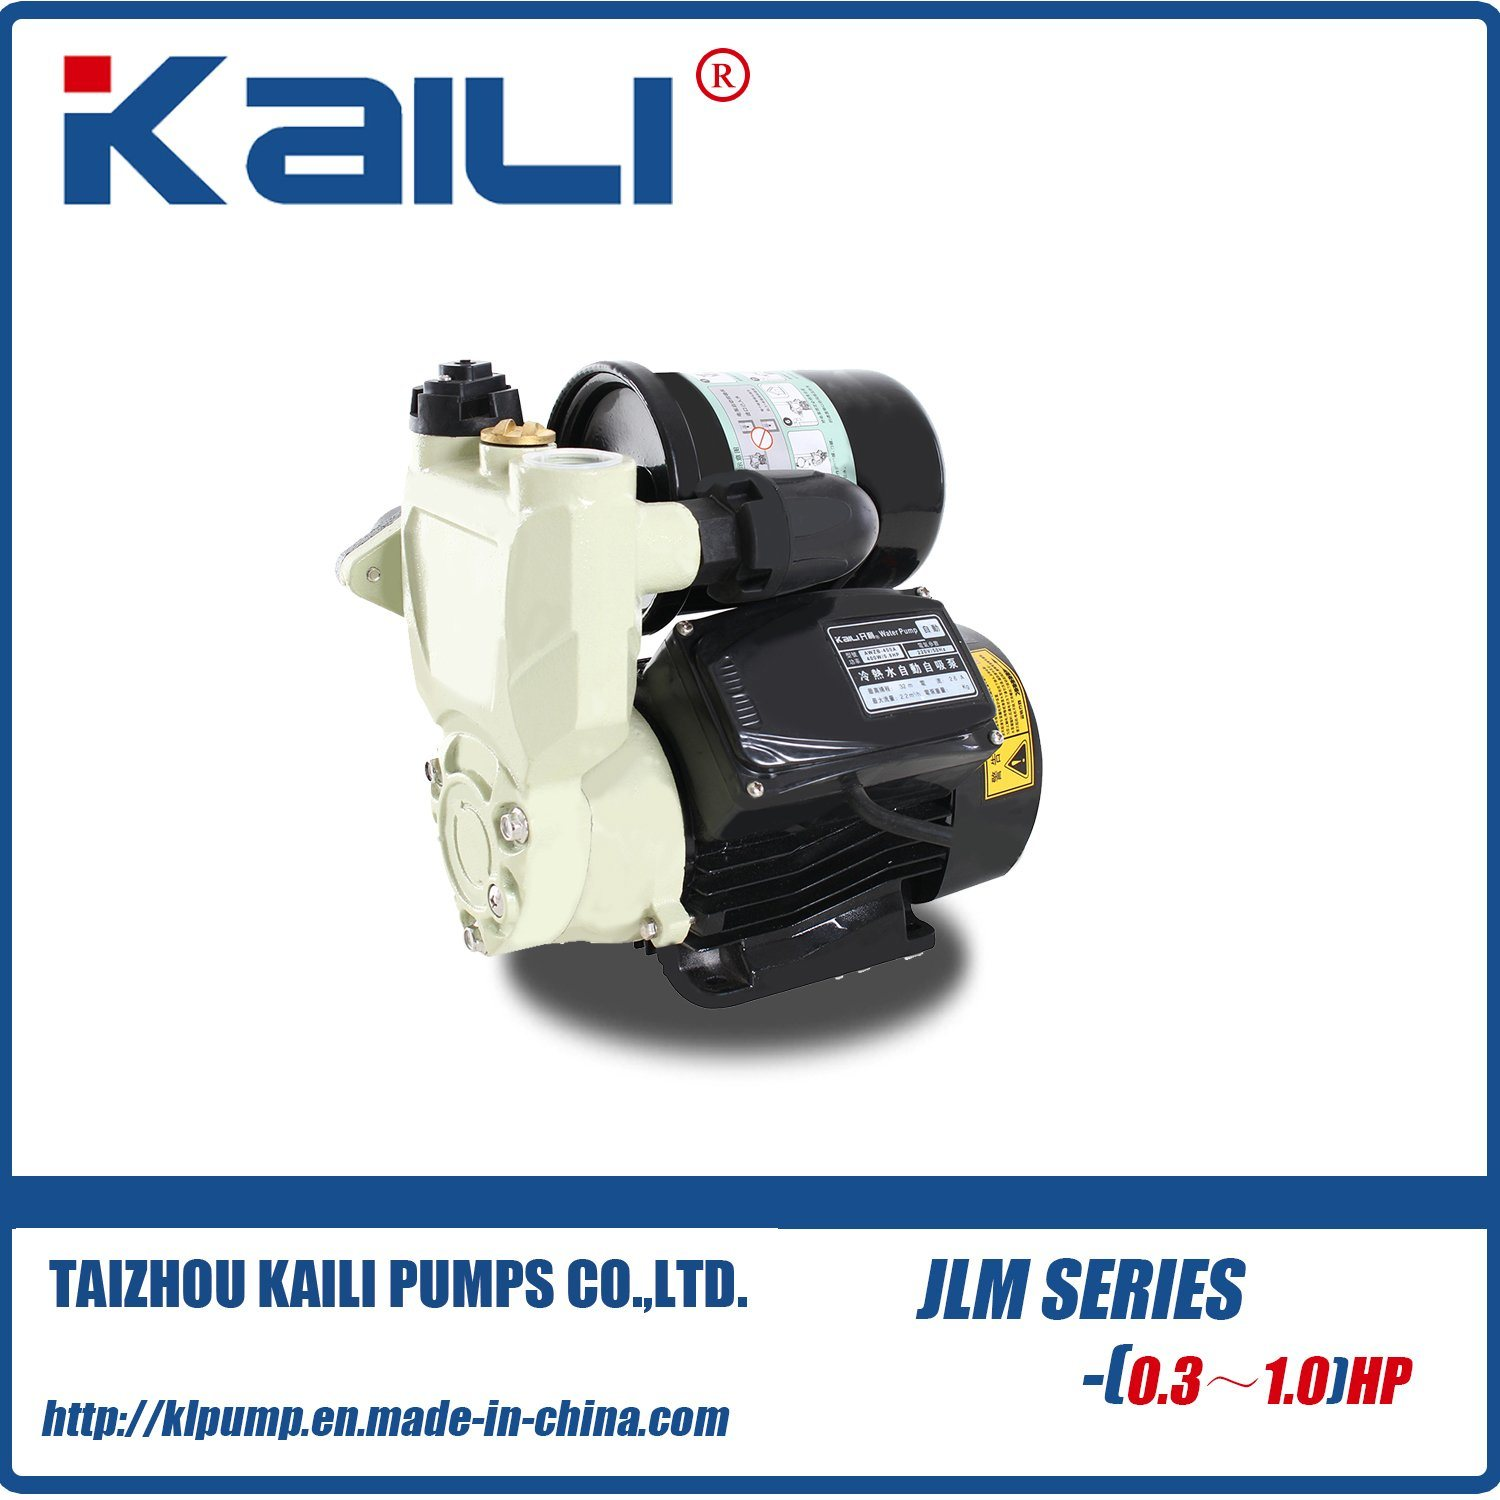 New Designed JLM Series Automatic Self Priming Pumps